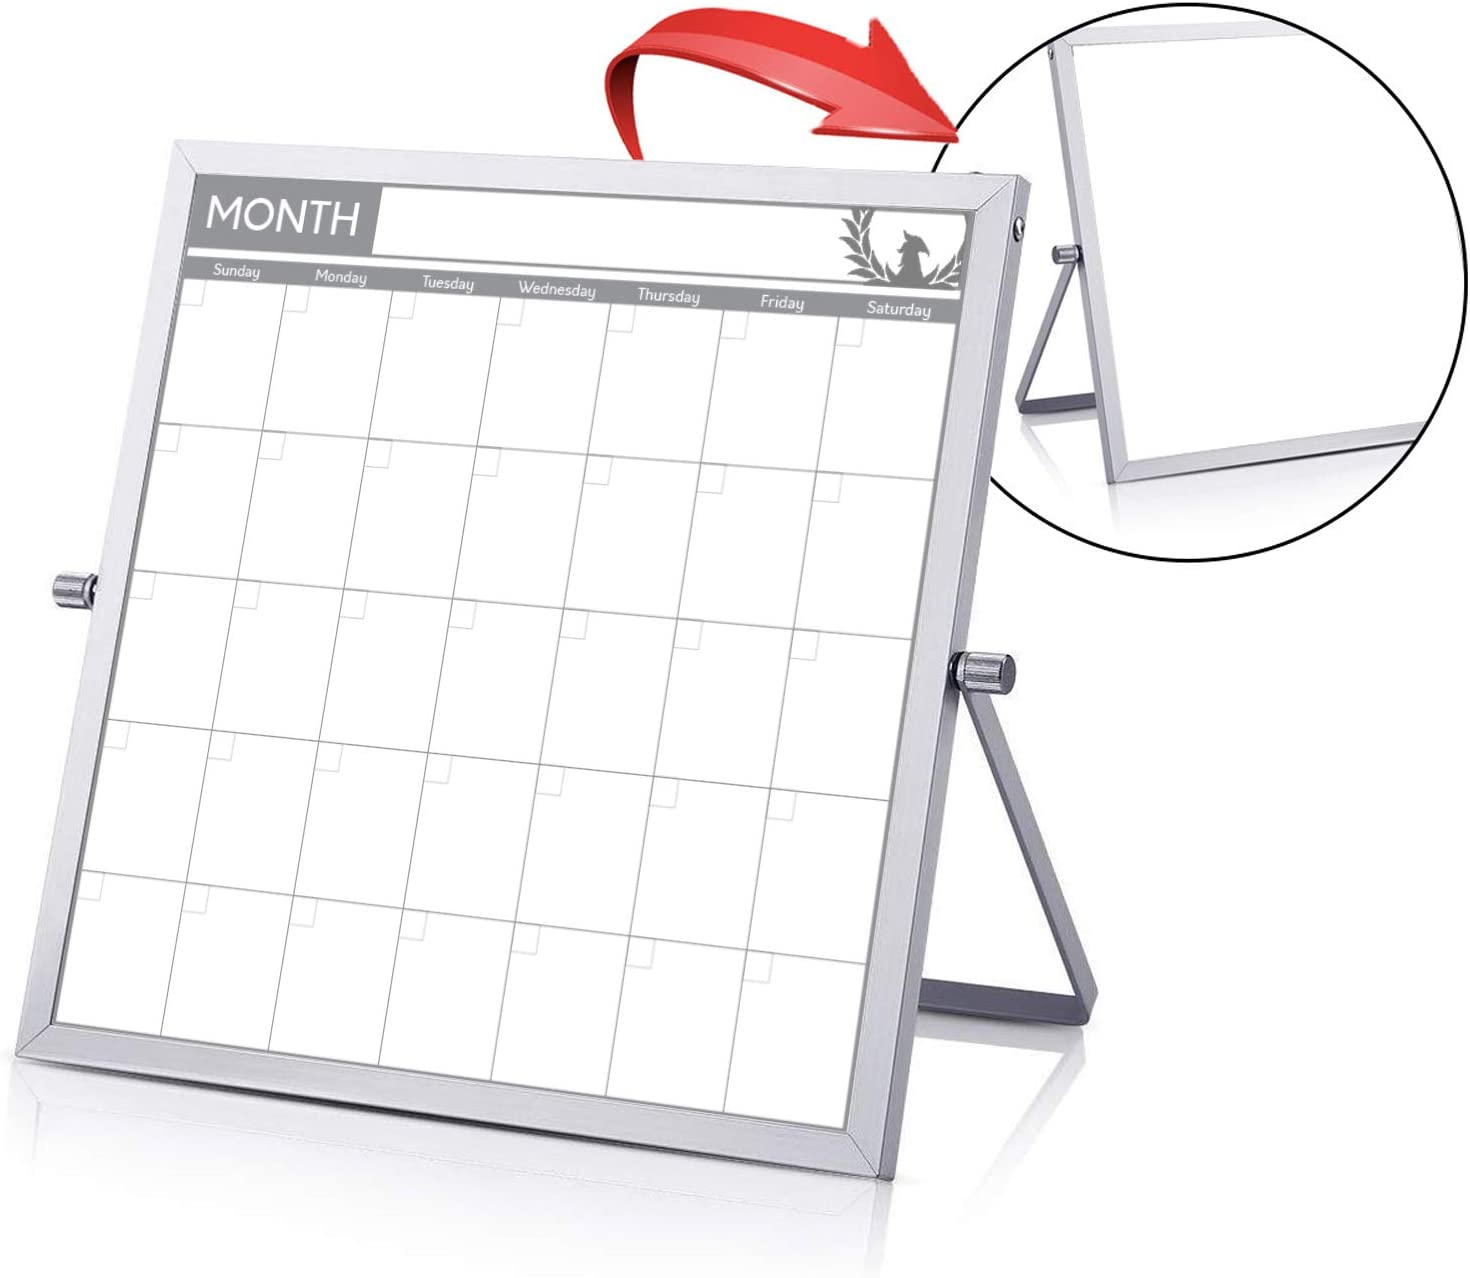 "Small Double Sided White Board Calendar - Mini Portable Desktop Dry Erase Board with Stand & Small Monthly Calendar Whiteboard Planner with Reversible to Do List - 10"" x 10"" - Desk, Office, and Home"